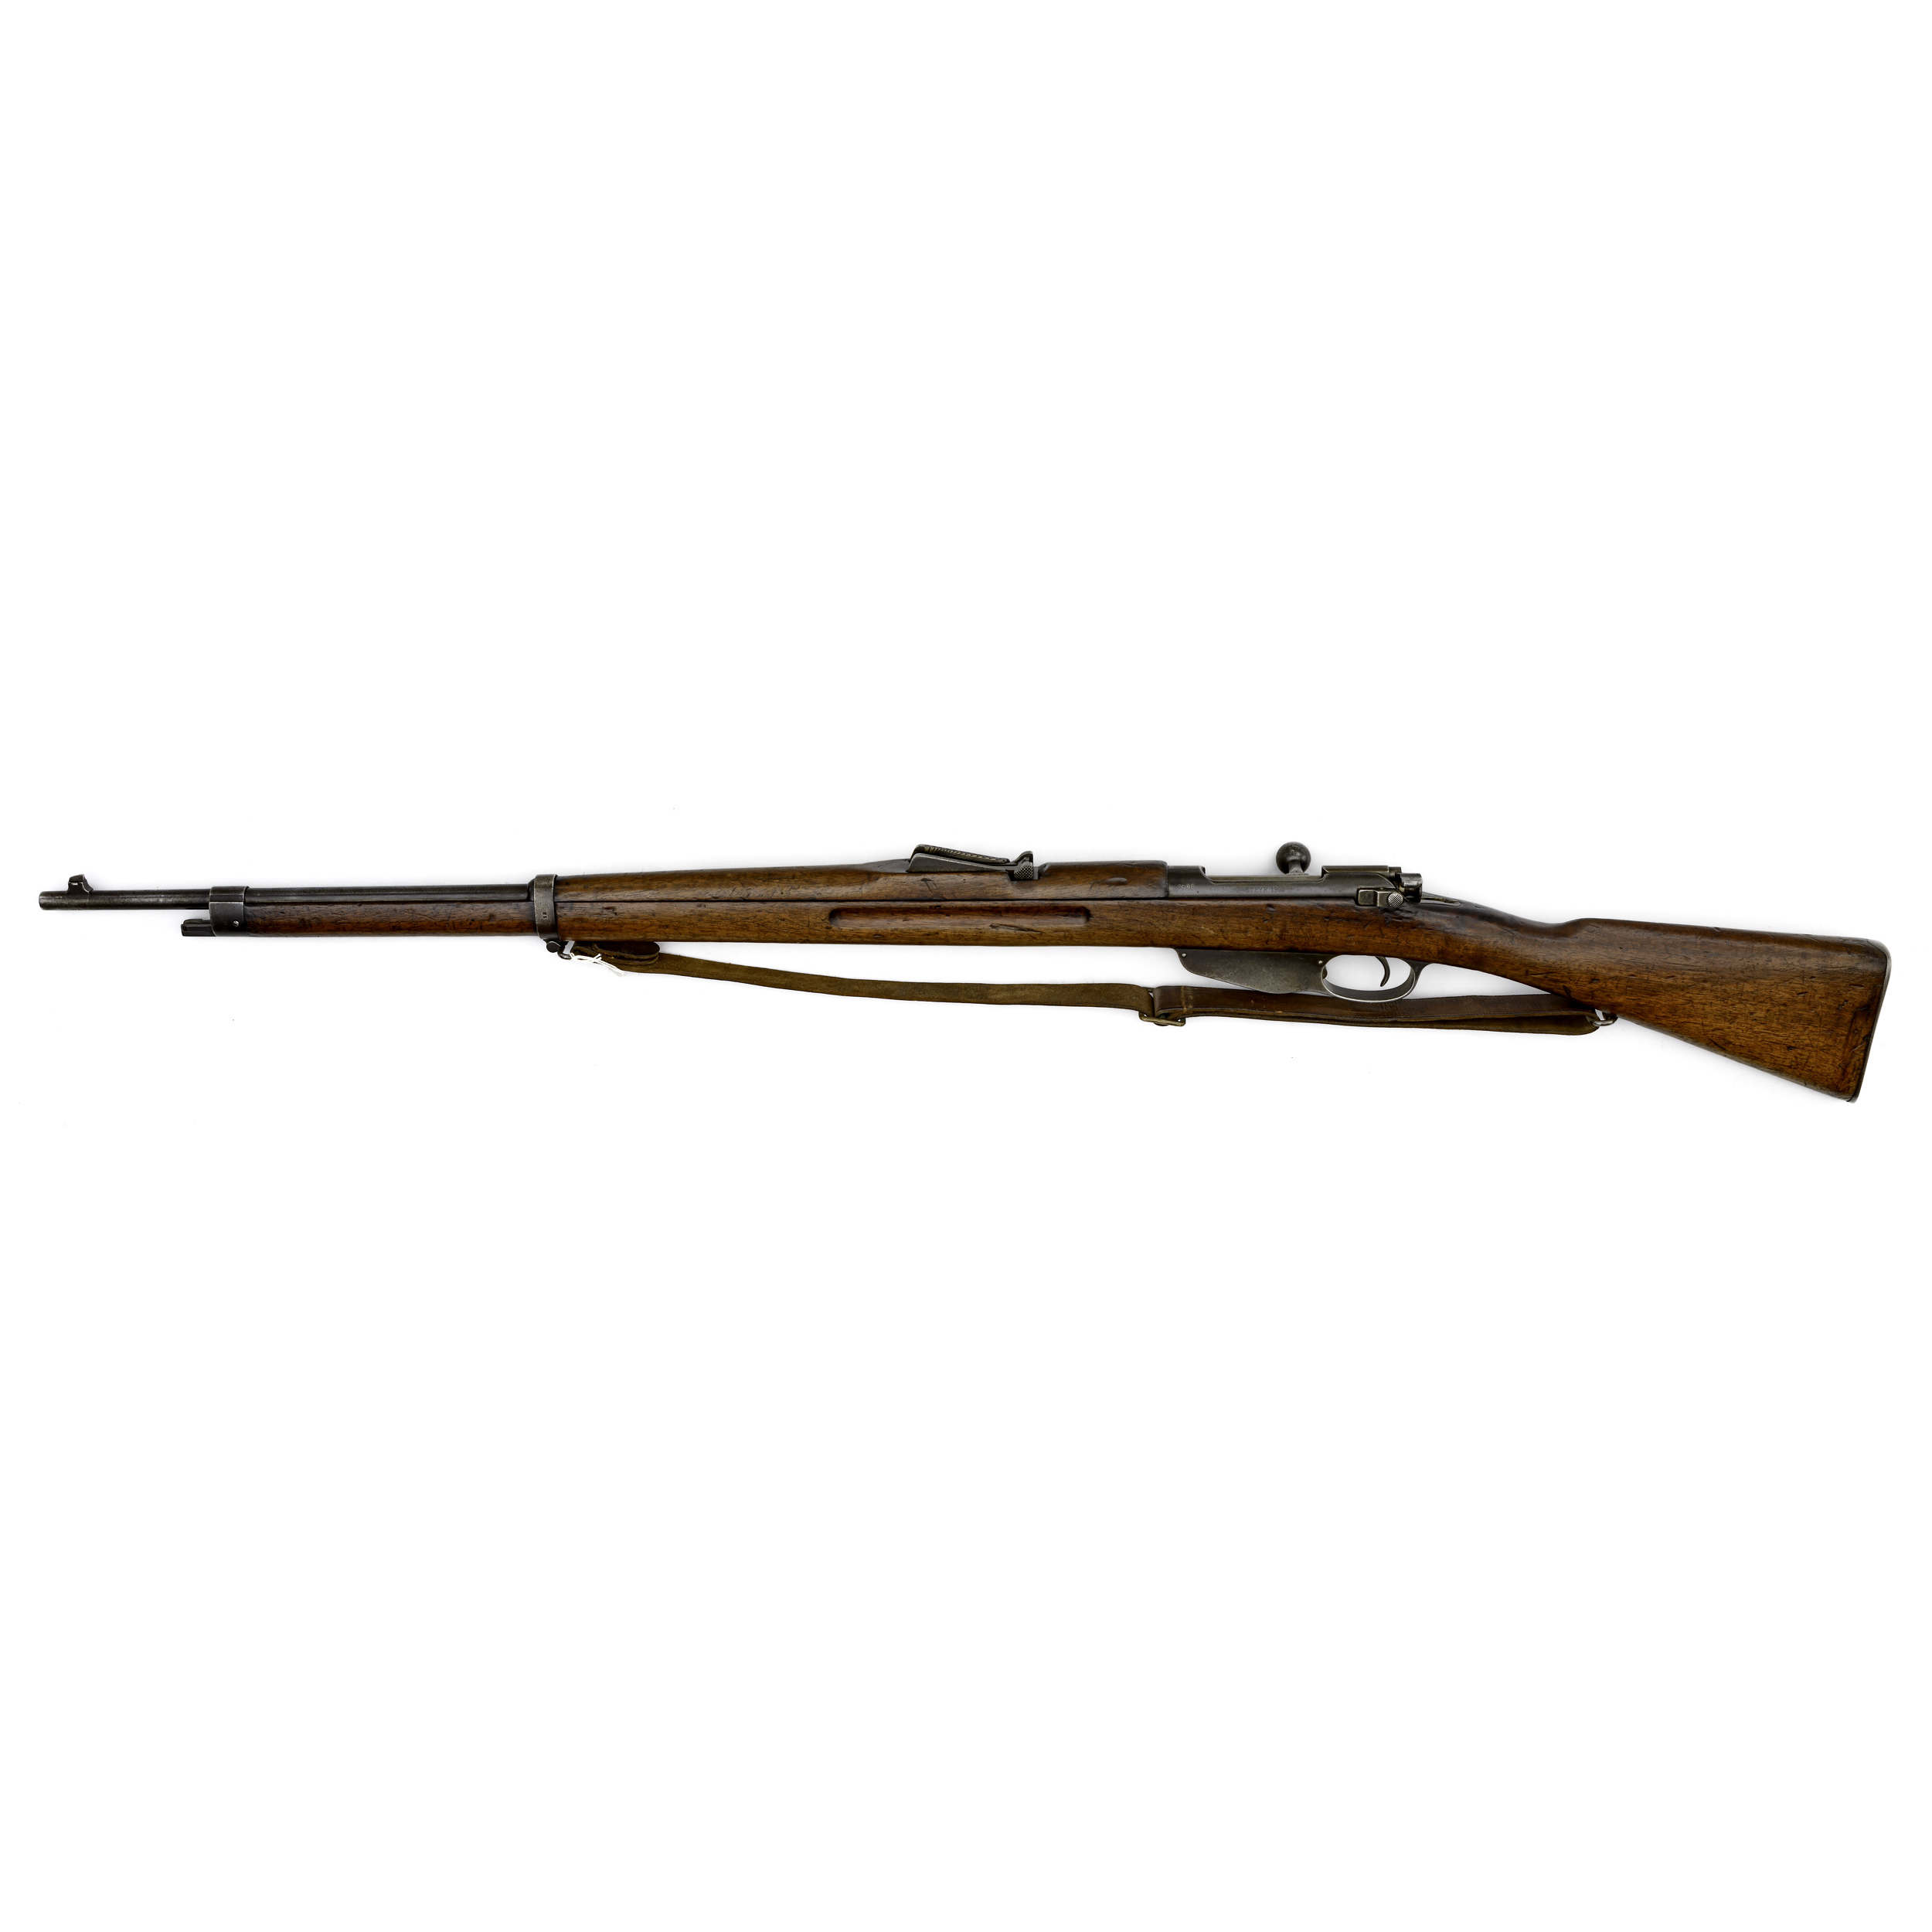 Dutch Mannlicher M1895 Bolt Action Rifle | Cowan's Auction House